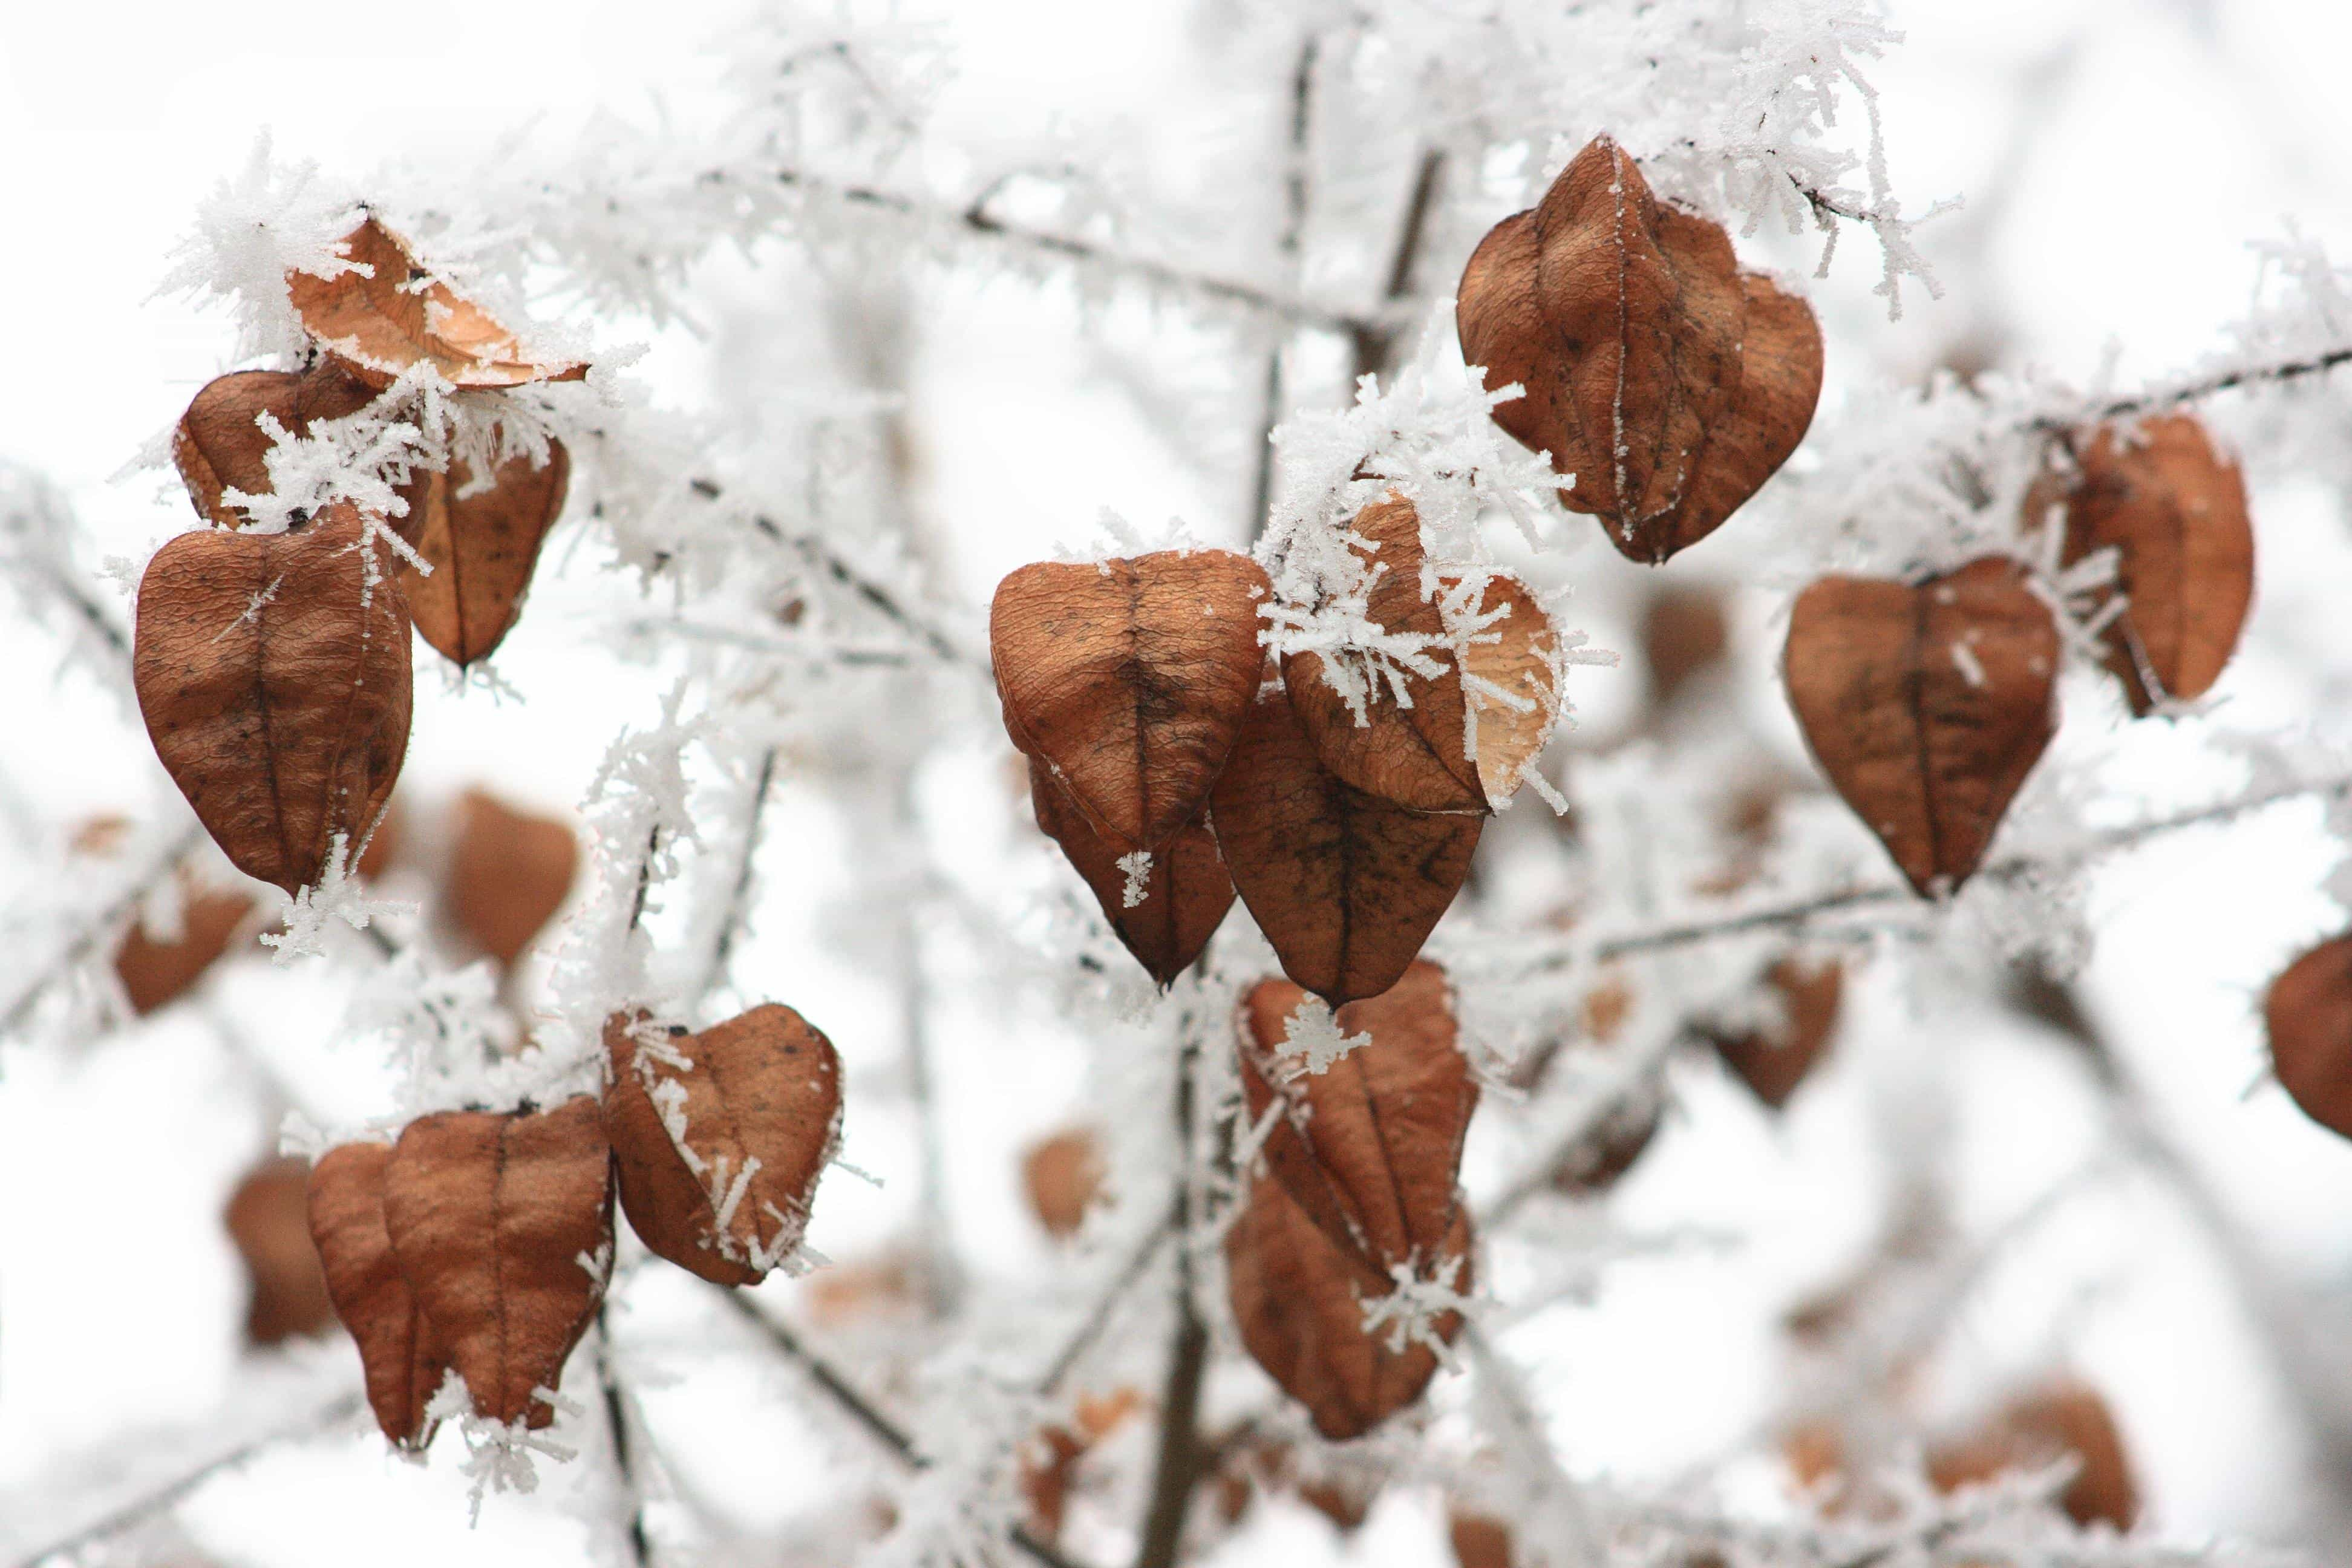 Dried brown seedpods on icy limbs, evoking the possibility of new life even in the middle of winter.